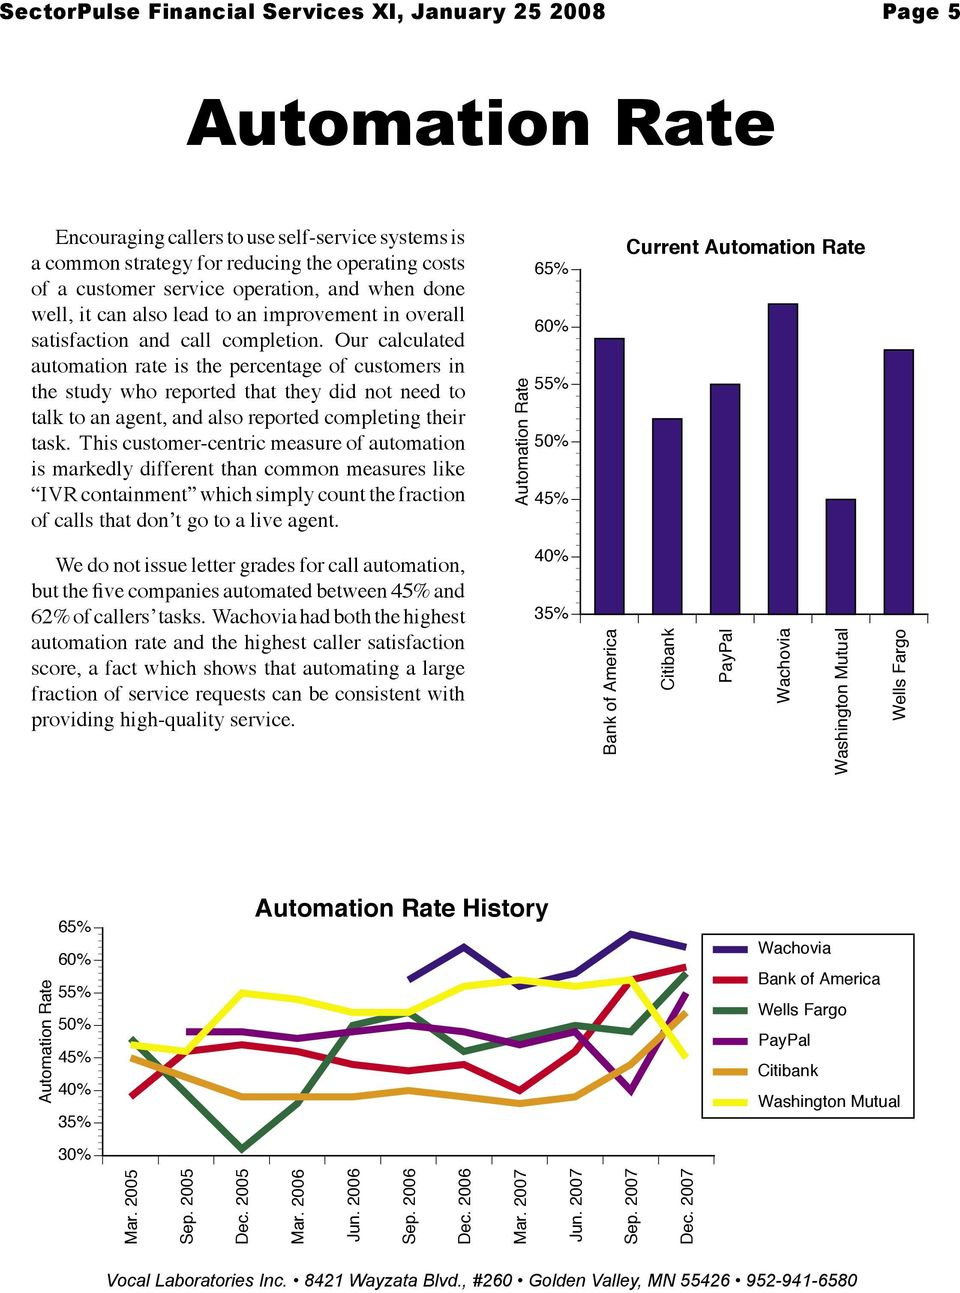 Our calculated automation rate is the percentage of customers in the study who reported that they did not need to talk to an agent, and also reported completing their task.